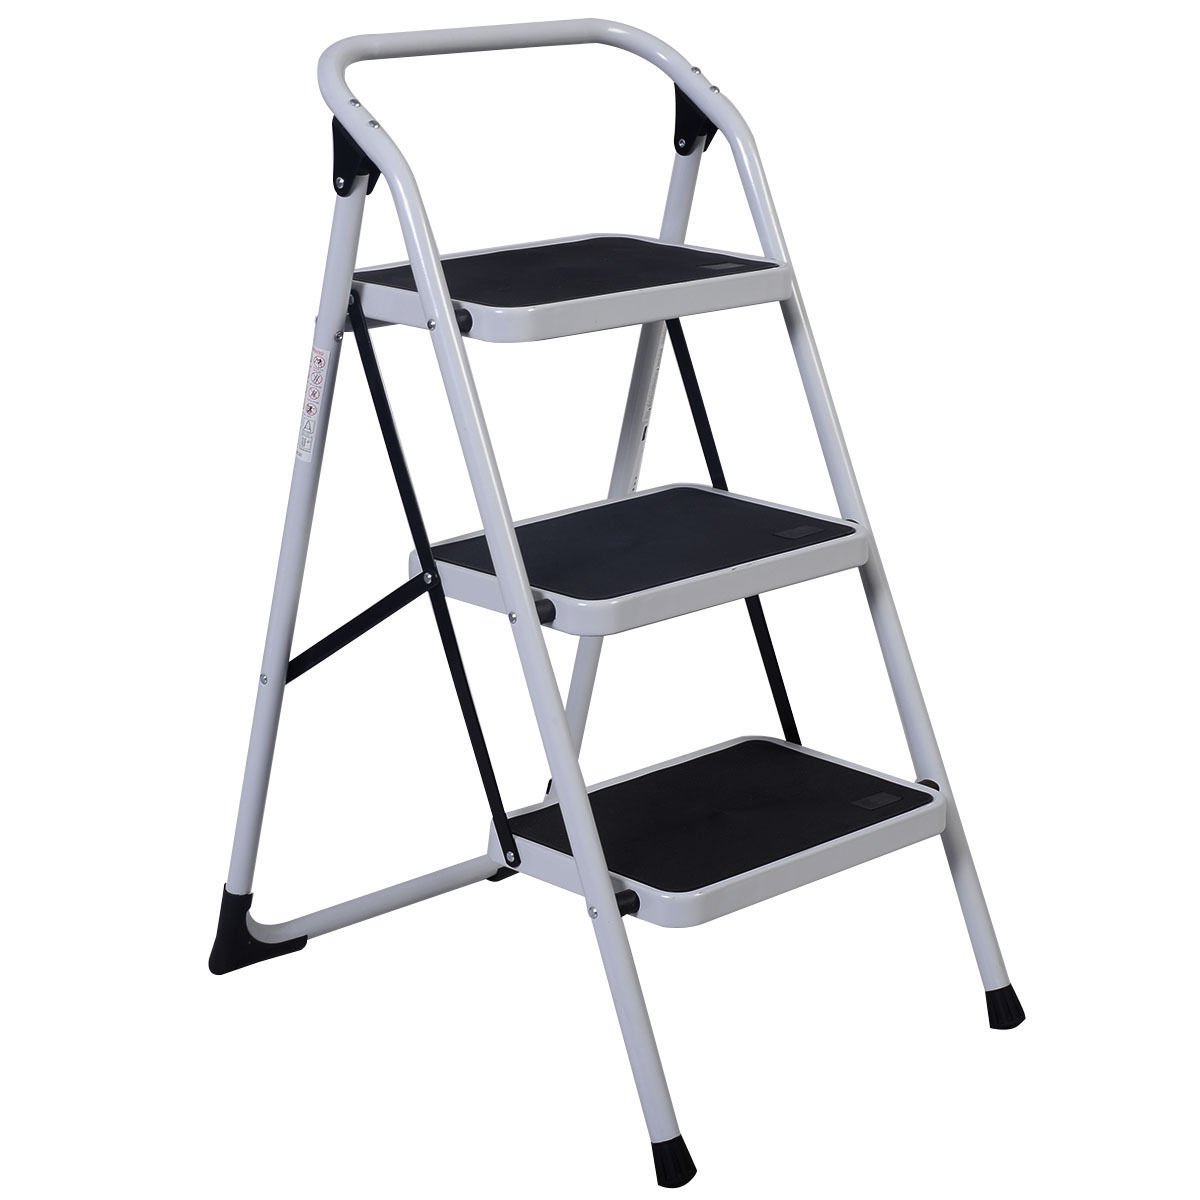 Oshion 3 Step Ladder Platform Folding Stool 330lbs Capacity Non Slip Safety Tread Space Saving Industrial Home Use